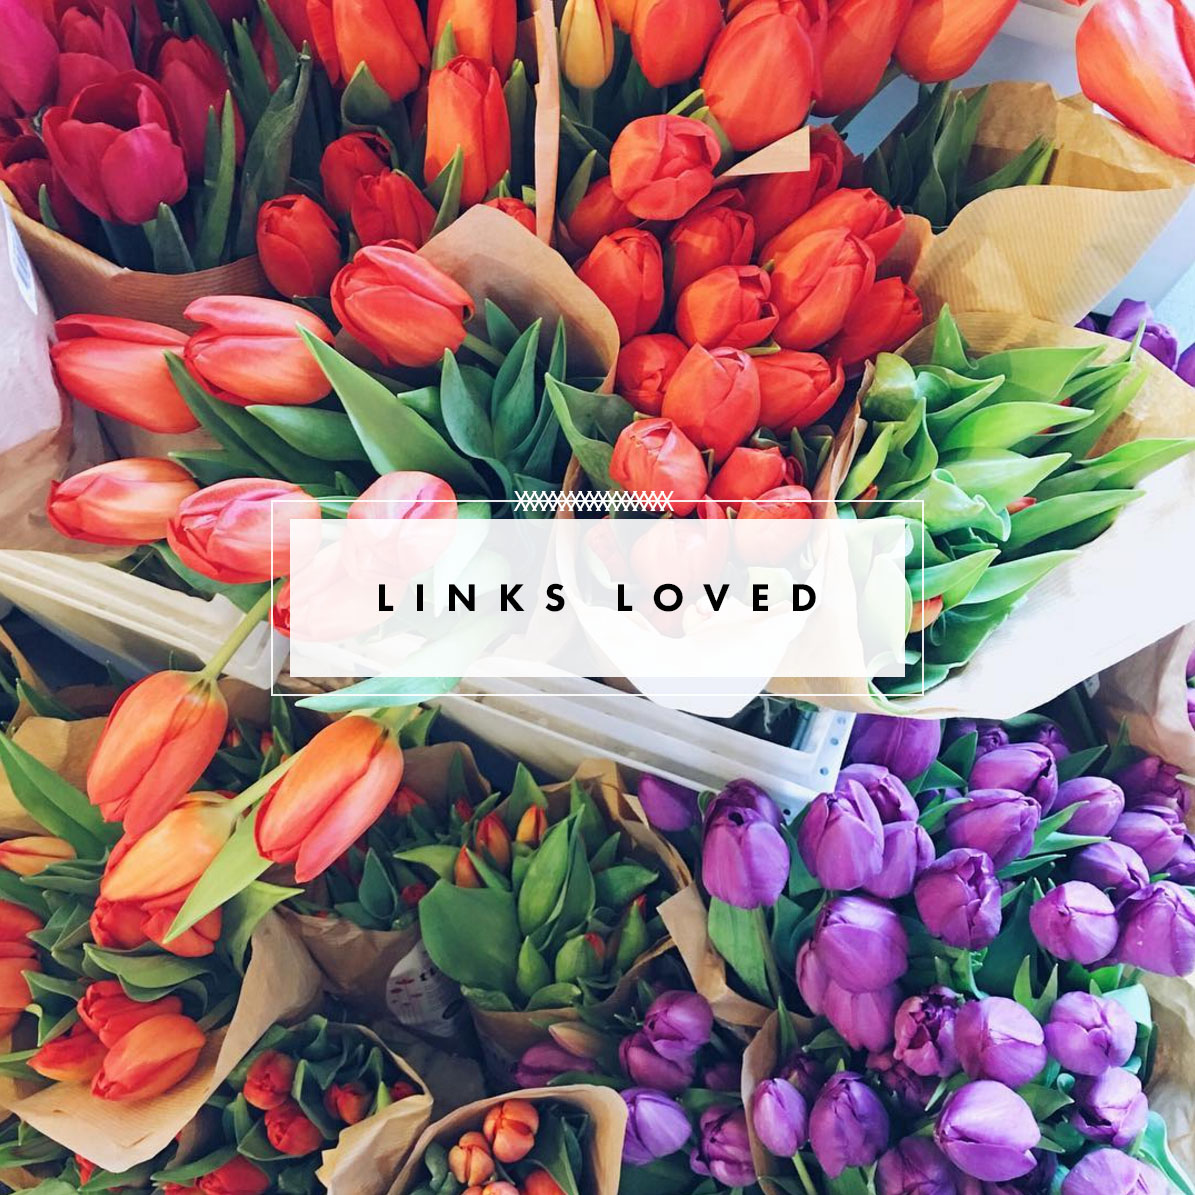 links loved - victoria mcginley studio